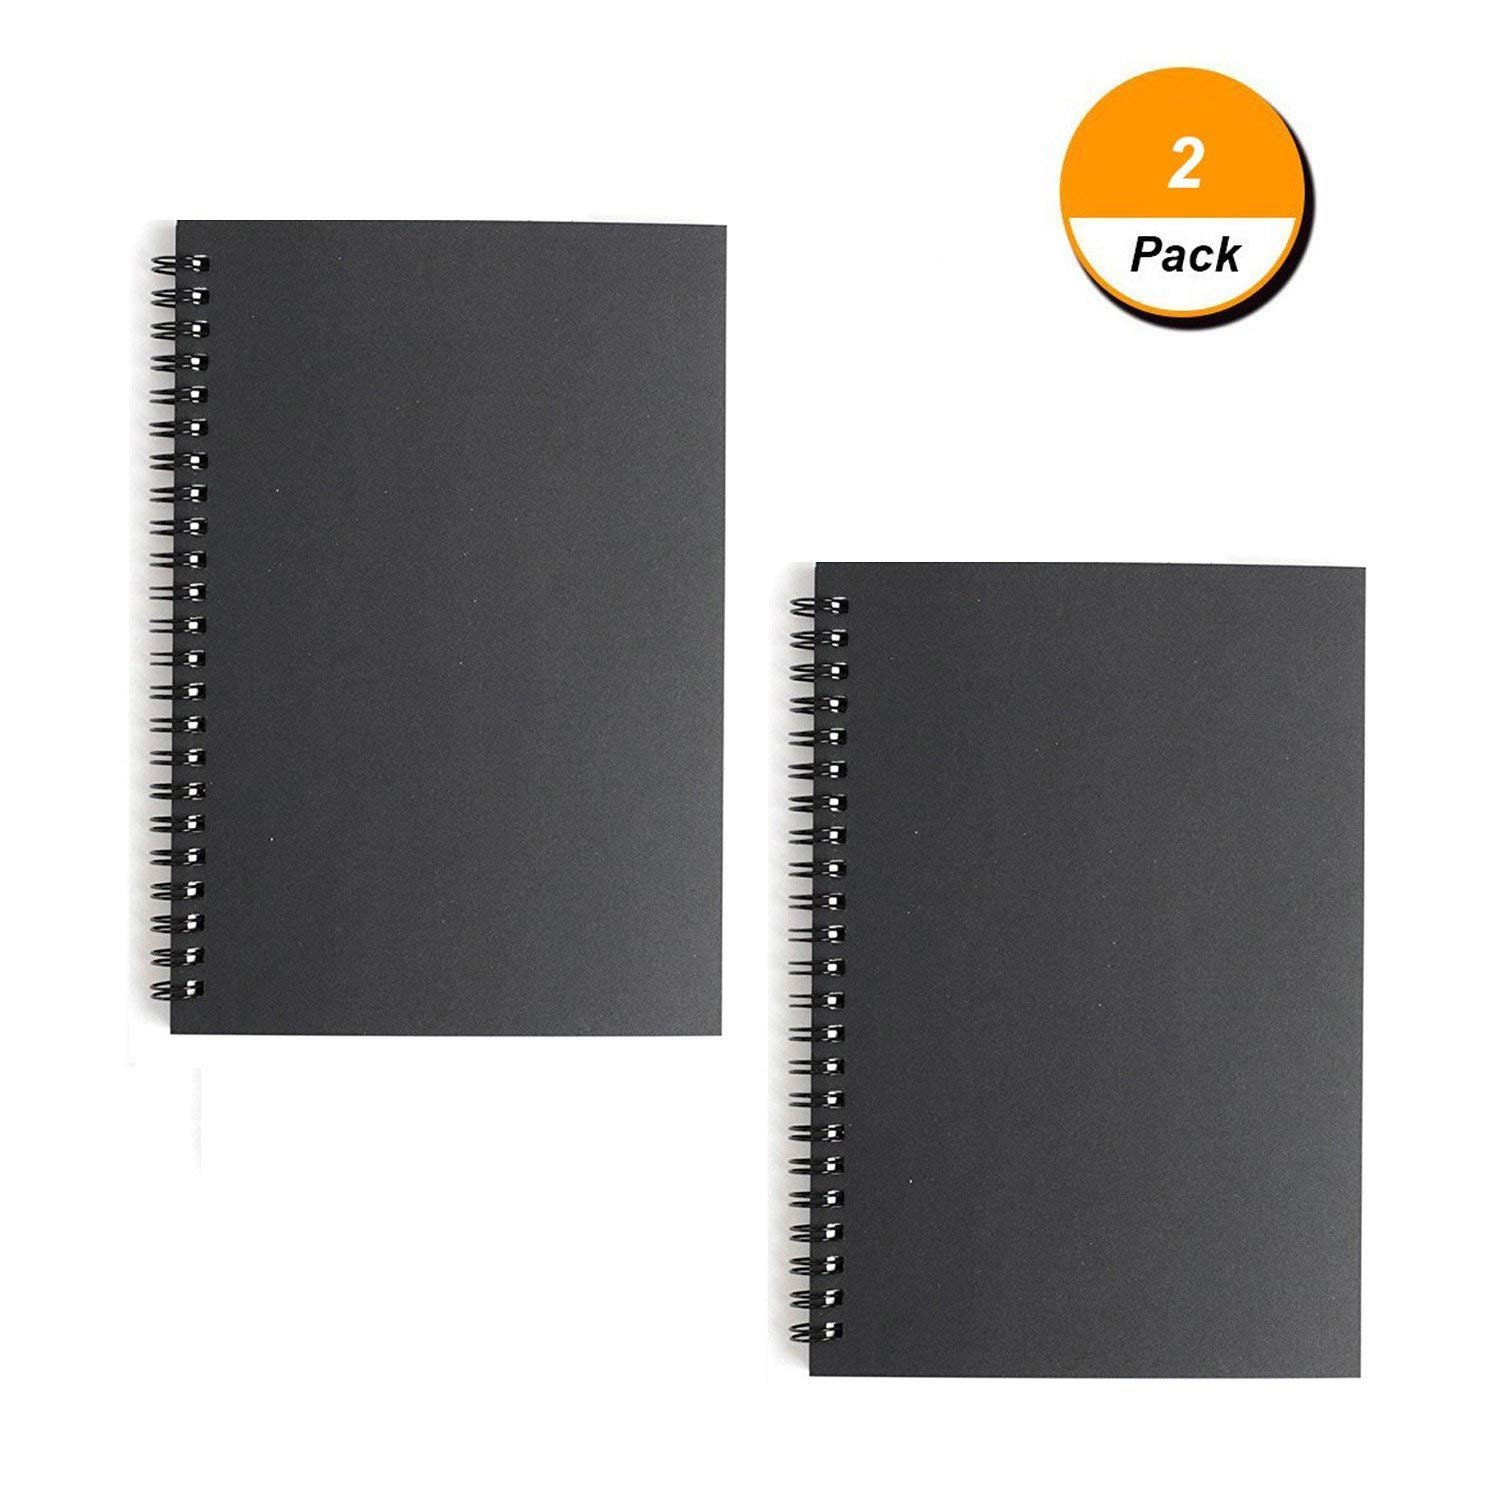 XYTMY (Set of 2) Soft Cover Notebook Spiral Notebook/Spiral Journal, Lined Pages, 2 Notebooks per Pack/Total 120 Sheets (240 Pages)-A5,5.78 x 8.26 5.78 x 8.26